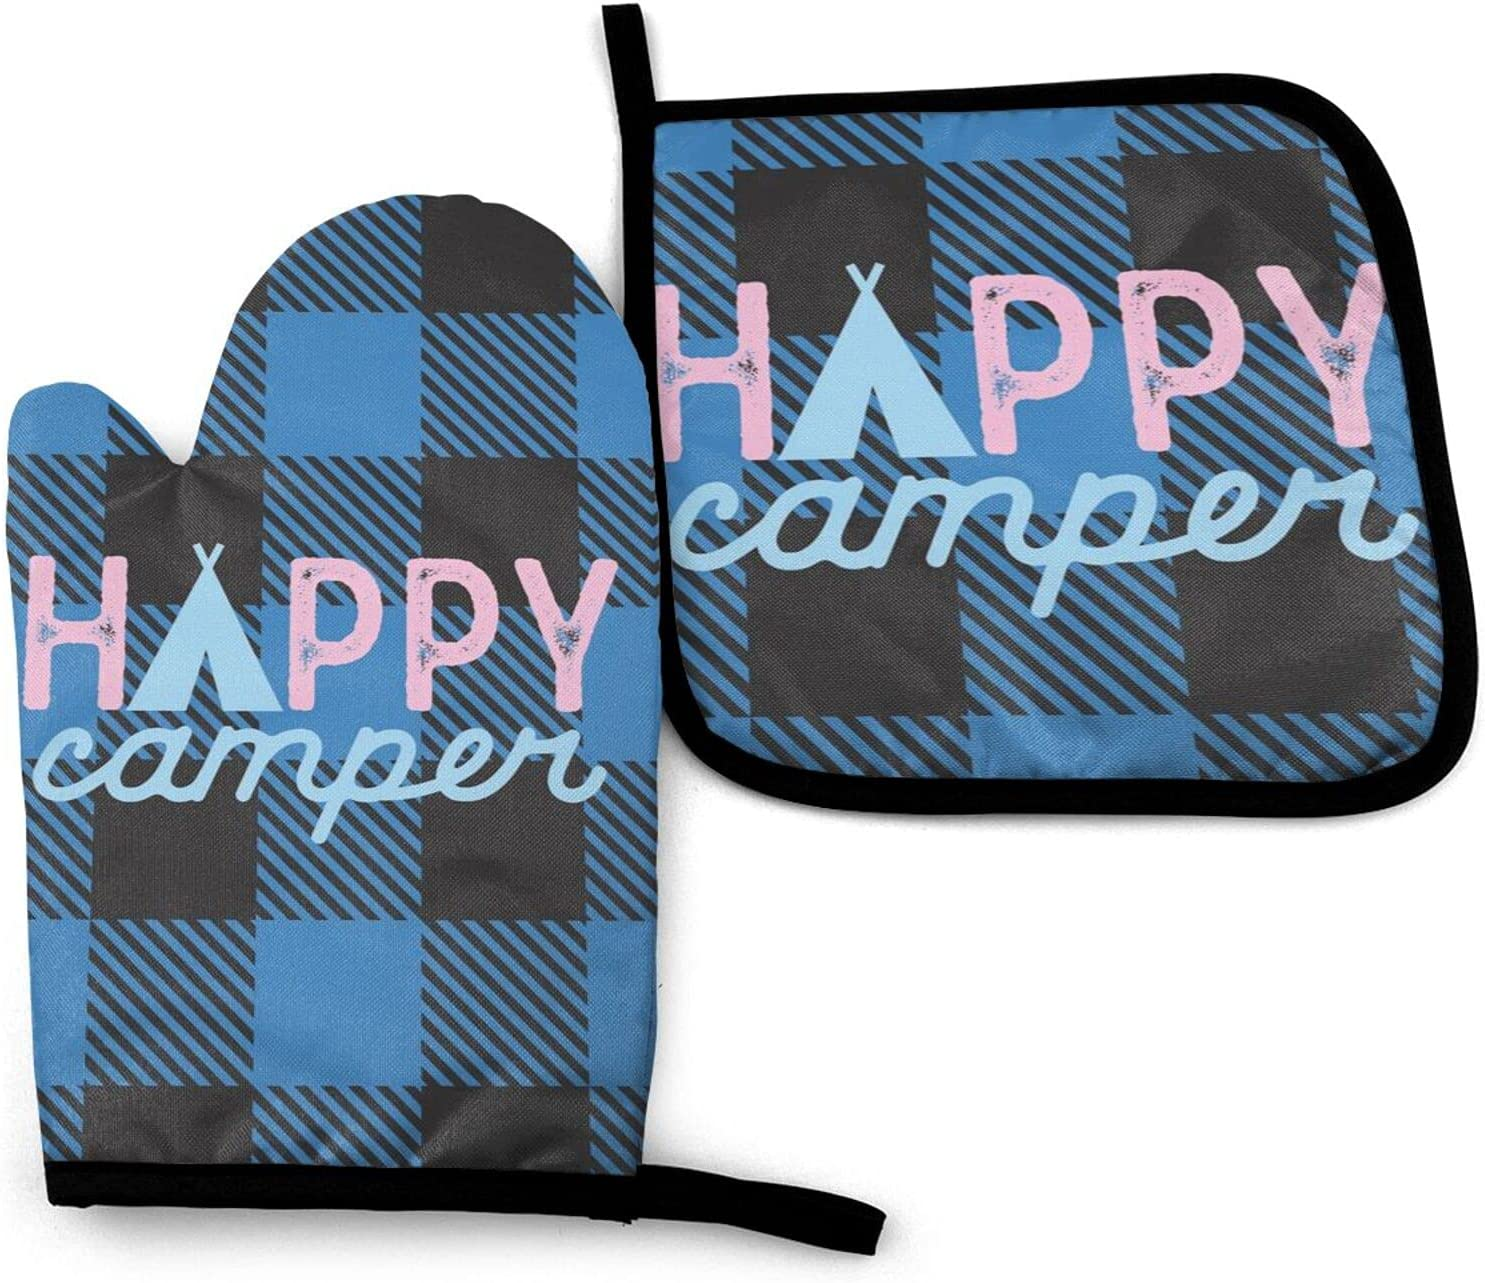 Happy Camper Oven Mitts Popular brand in the world and Japan's largest assortment Pot Mi Kitchen Non-Slip Set Holders